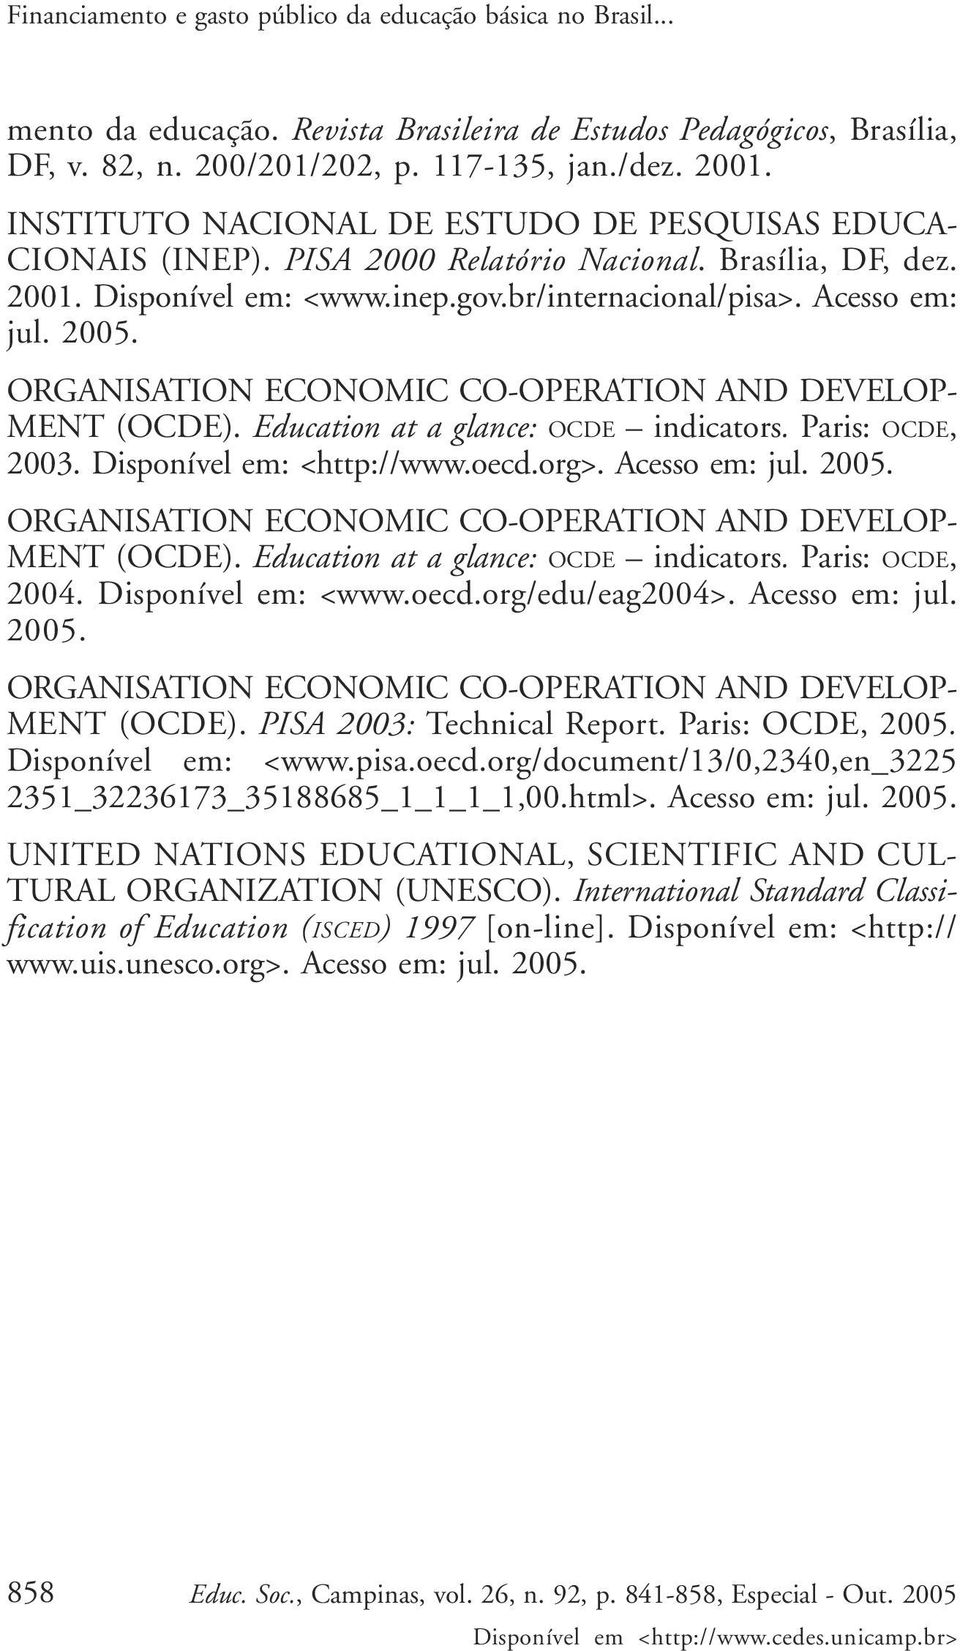 ORGANISATION ECONOMIC CO-OPERATION AND DEVELOP- MENT (OCDE). Education at a glance: OCDE indicators. Paris: OCDE, 2003. Disponível em: <http://www.oecd.org>. Acesso em: jul. 2005.